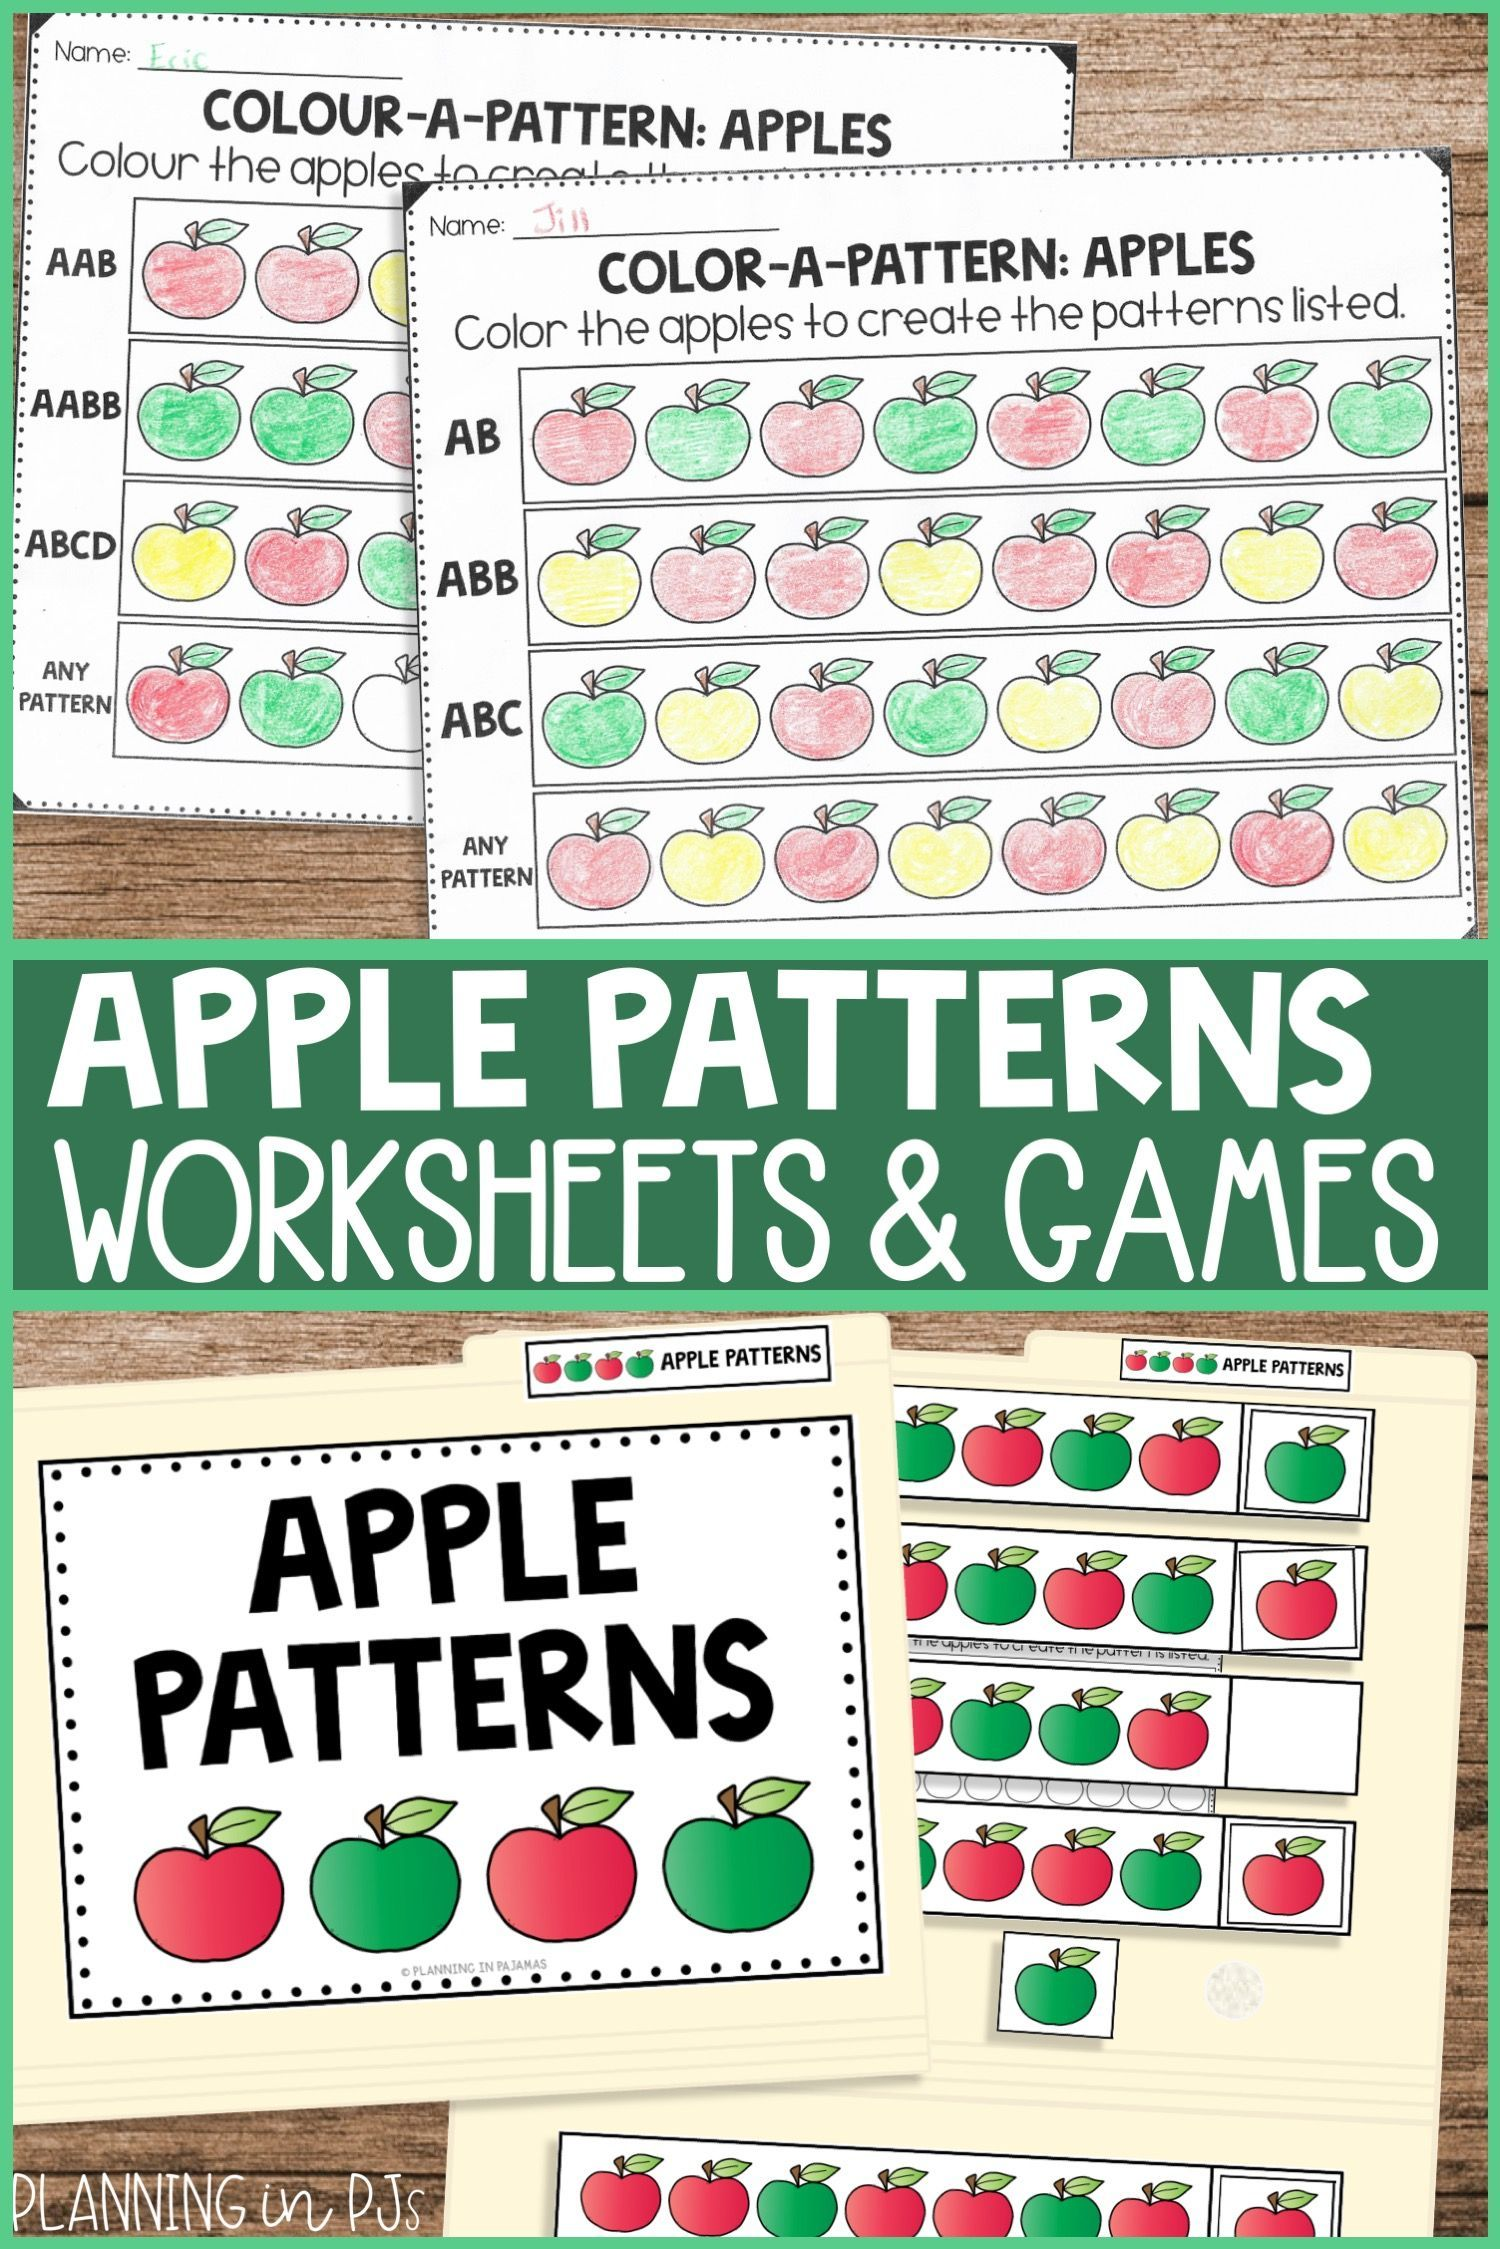 Apple Patterns Worksheets File Folder Game